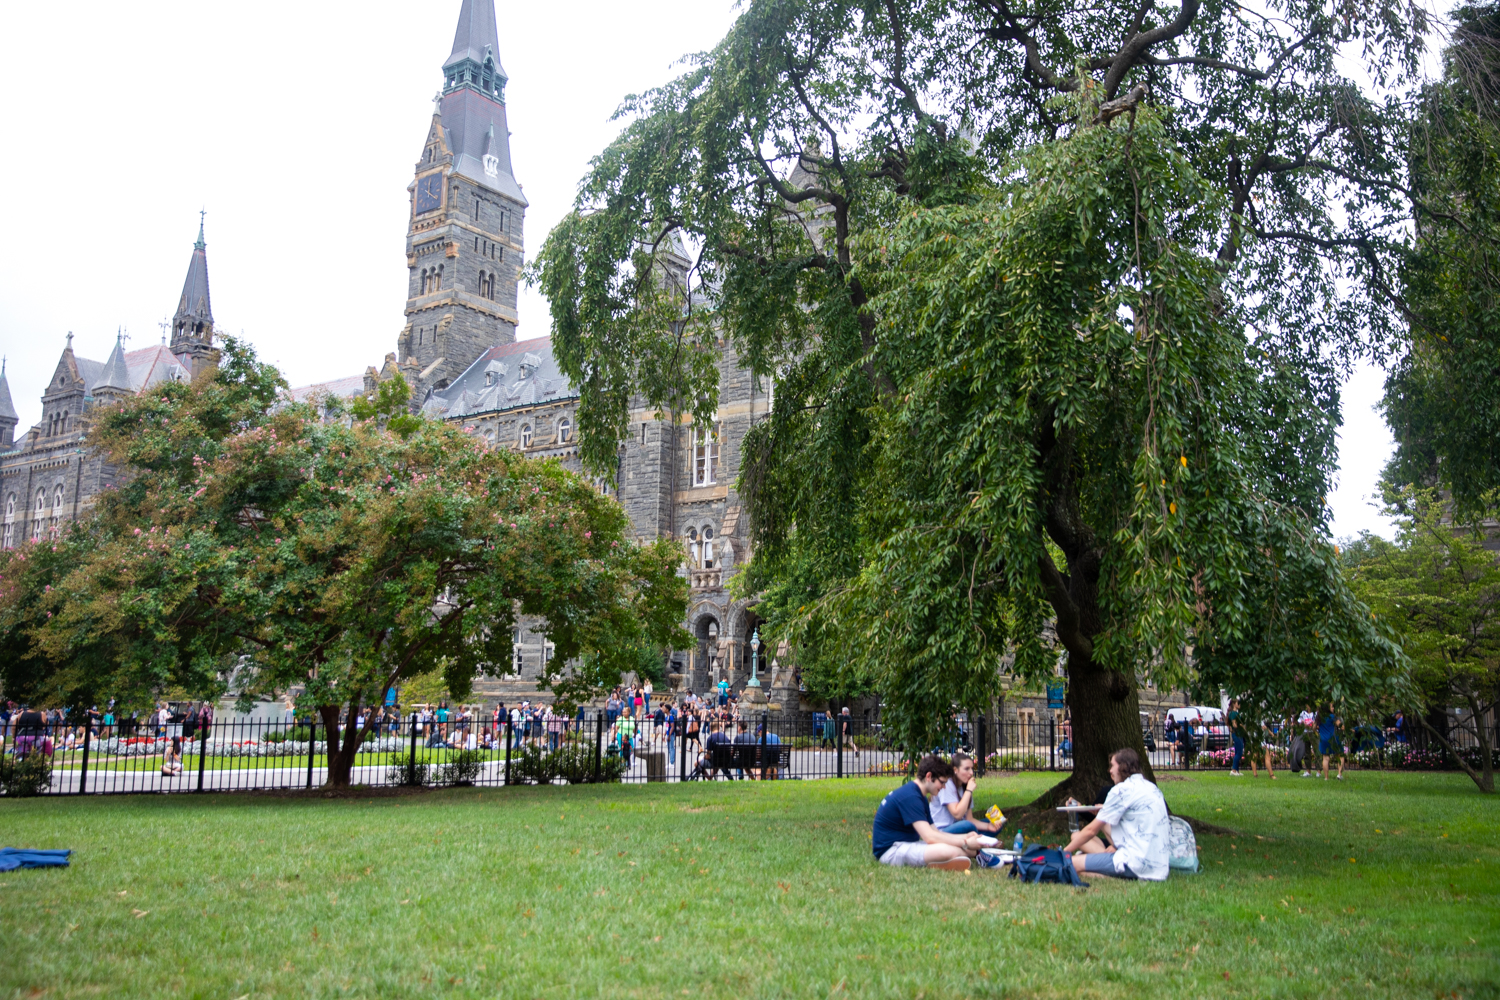 Students sit on Healy Lawn and chat on a sunny day, Healy Hall is in the background